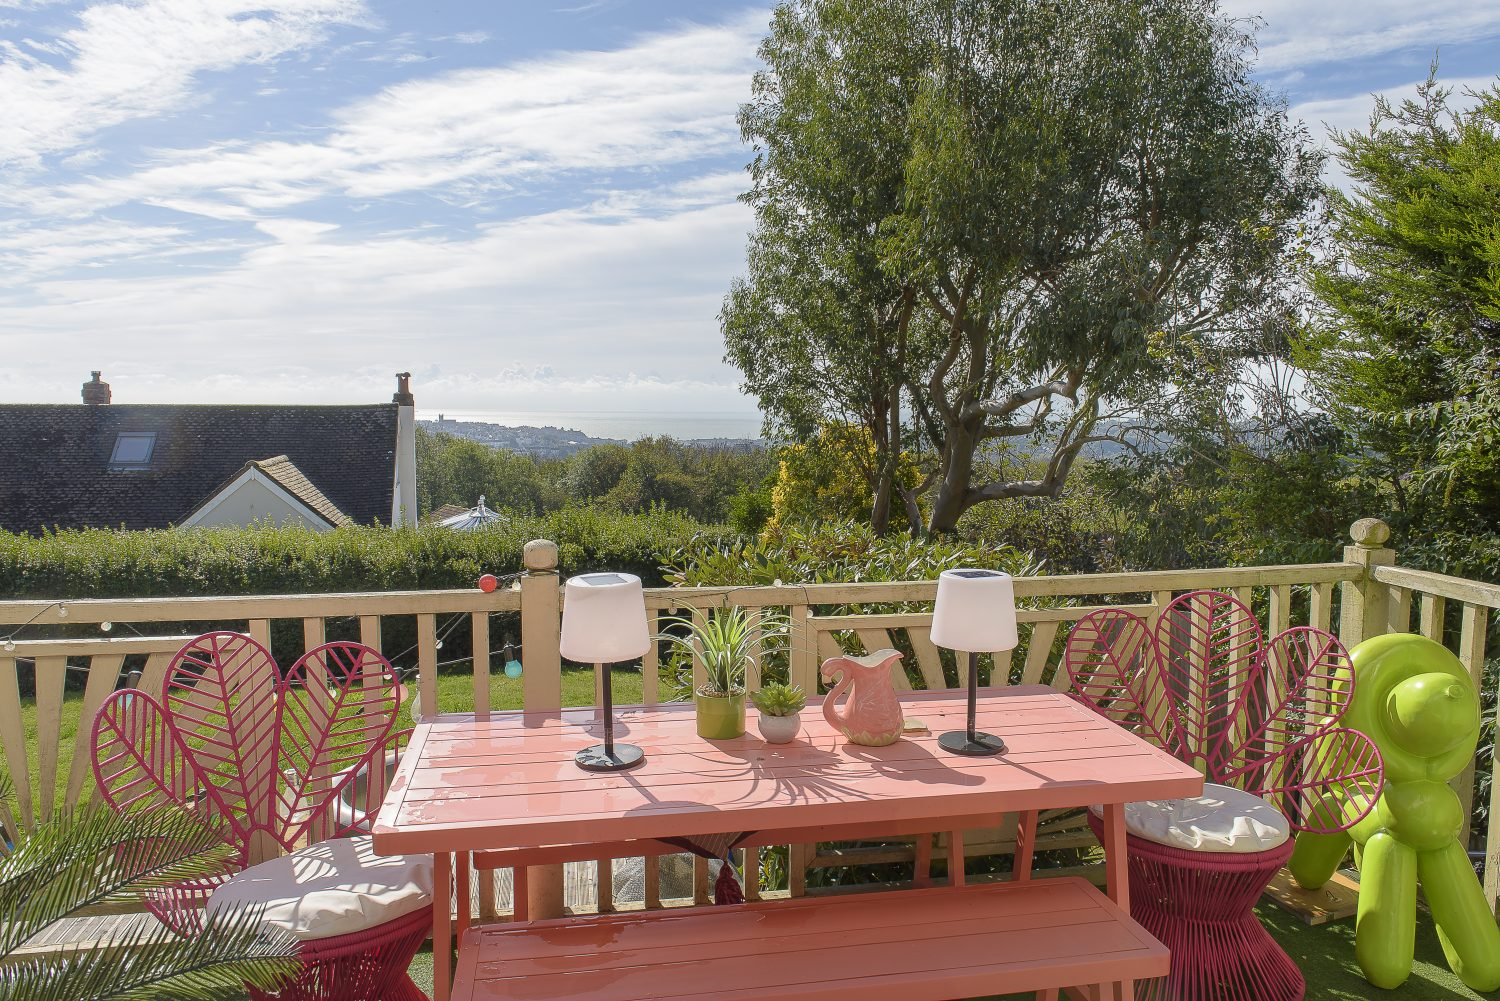 The deck on the south side of the house has an enviable panoramic sea view. Cat bought the Urban Balcony pink leaf chairs from HomeSense. A vivid green balloon poodle sculpture and bubblegum pink bench add to the kitch charm